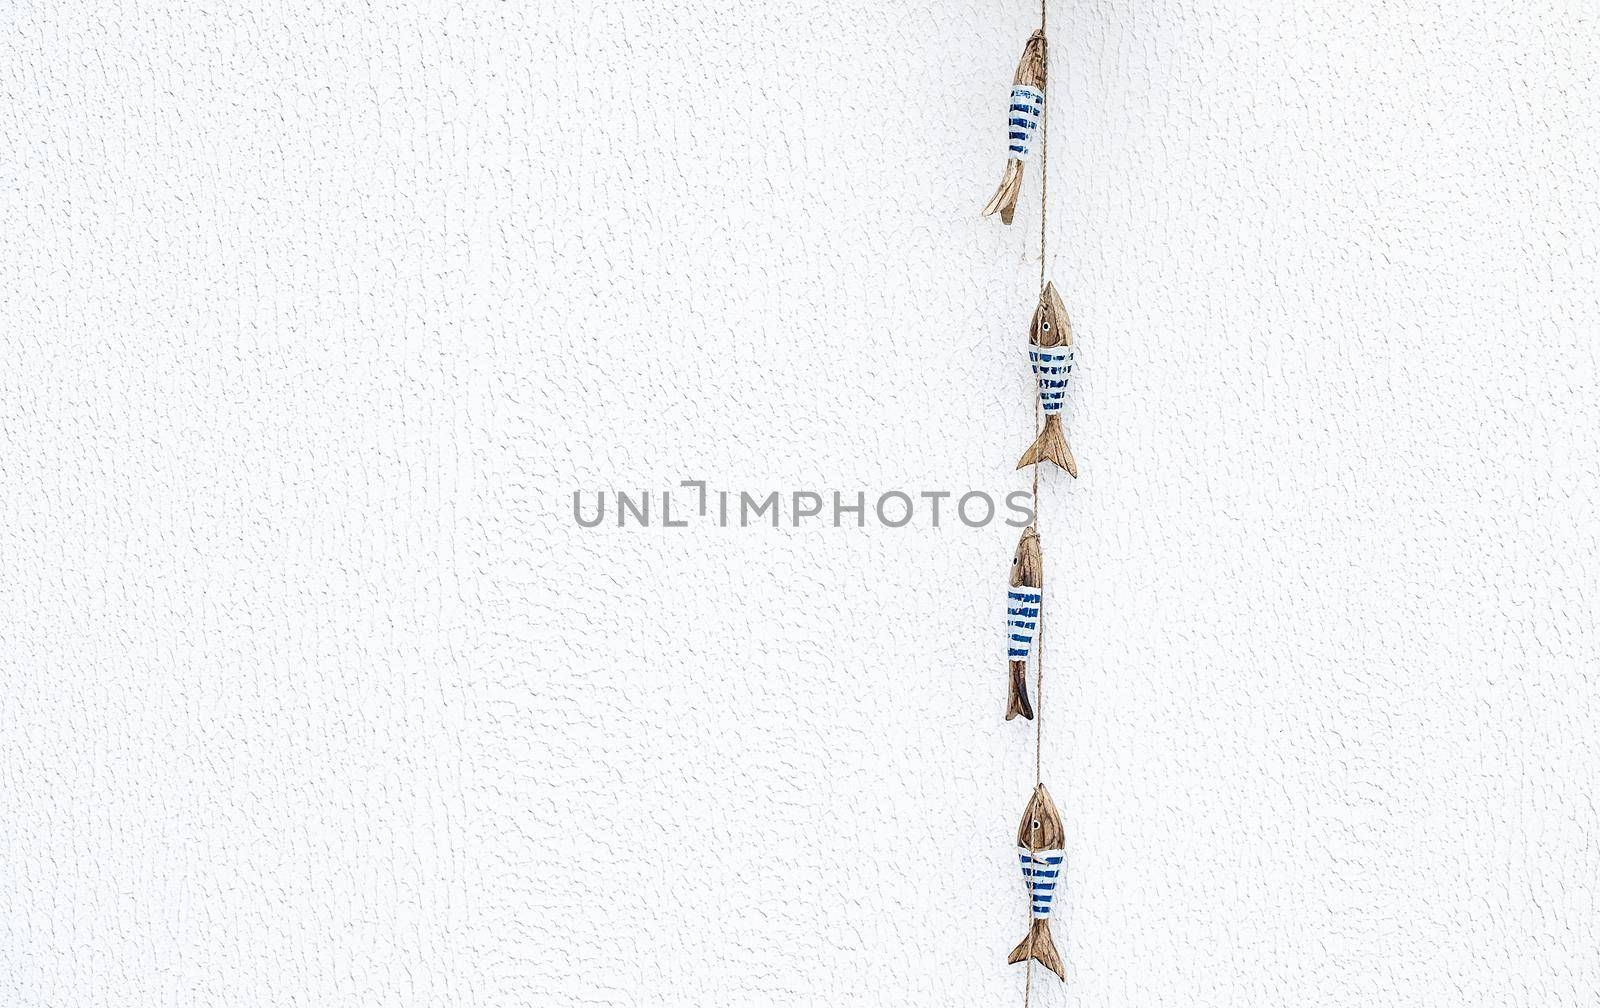 Beautiful Clean White Background with Cute Little Wooden Fishes Decoration on the Side. Stylish Beach House Decor. Summertime Wallpaper.